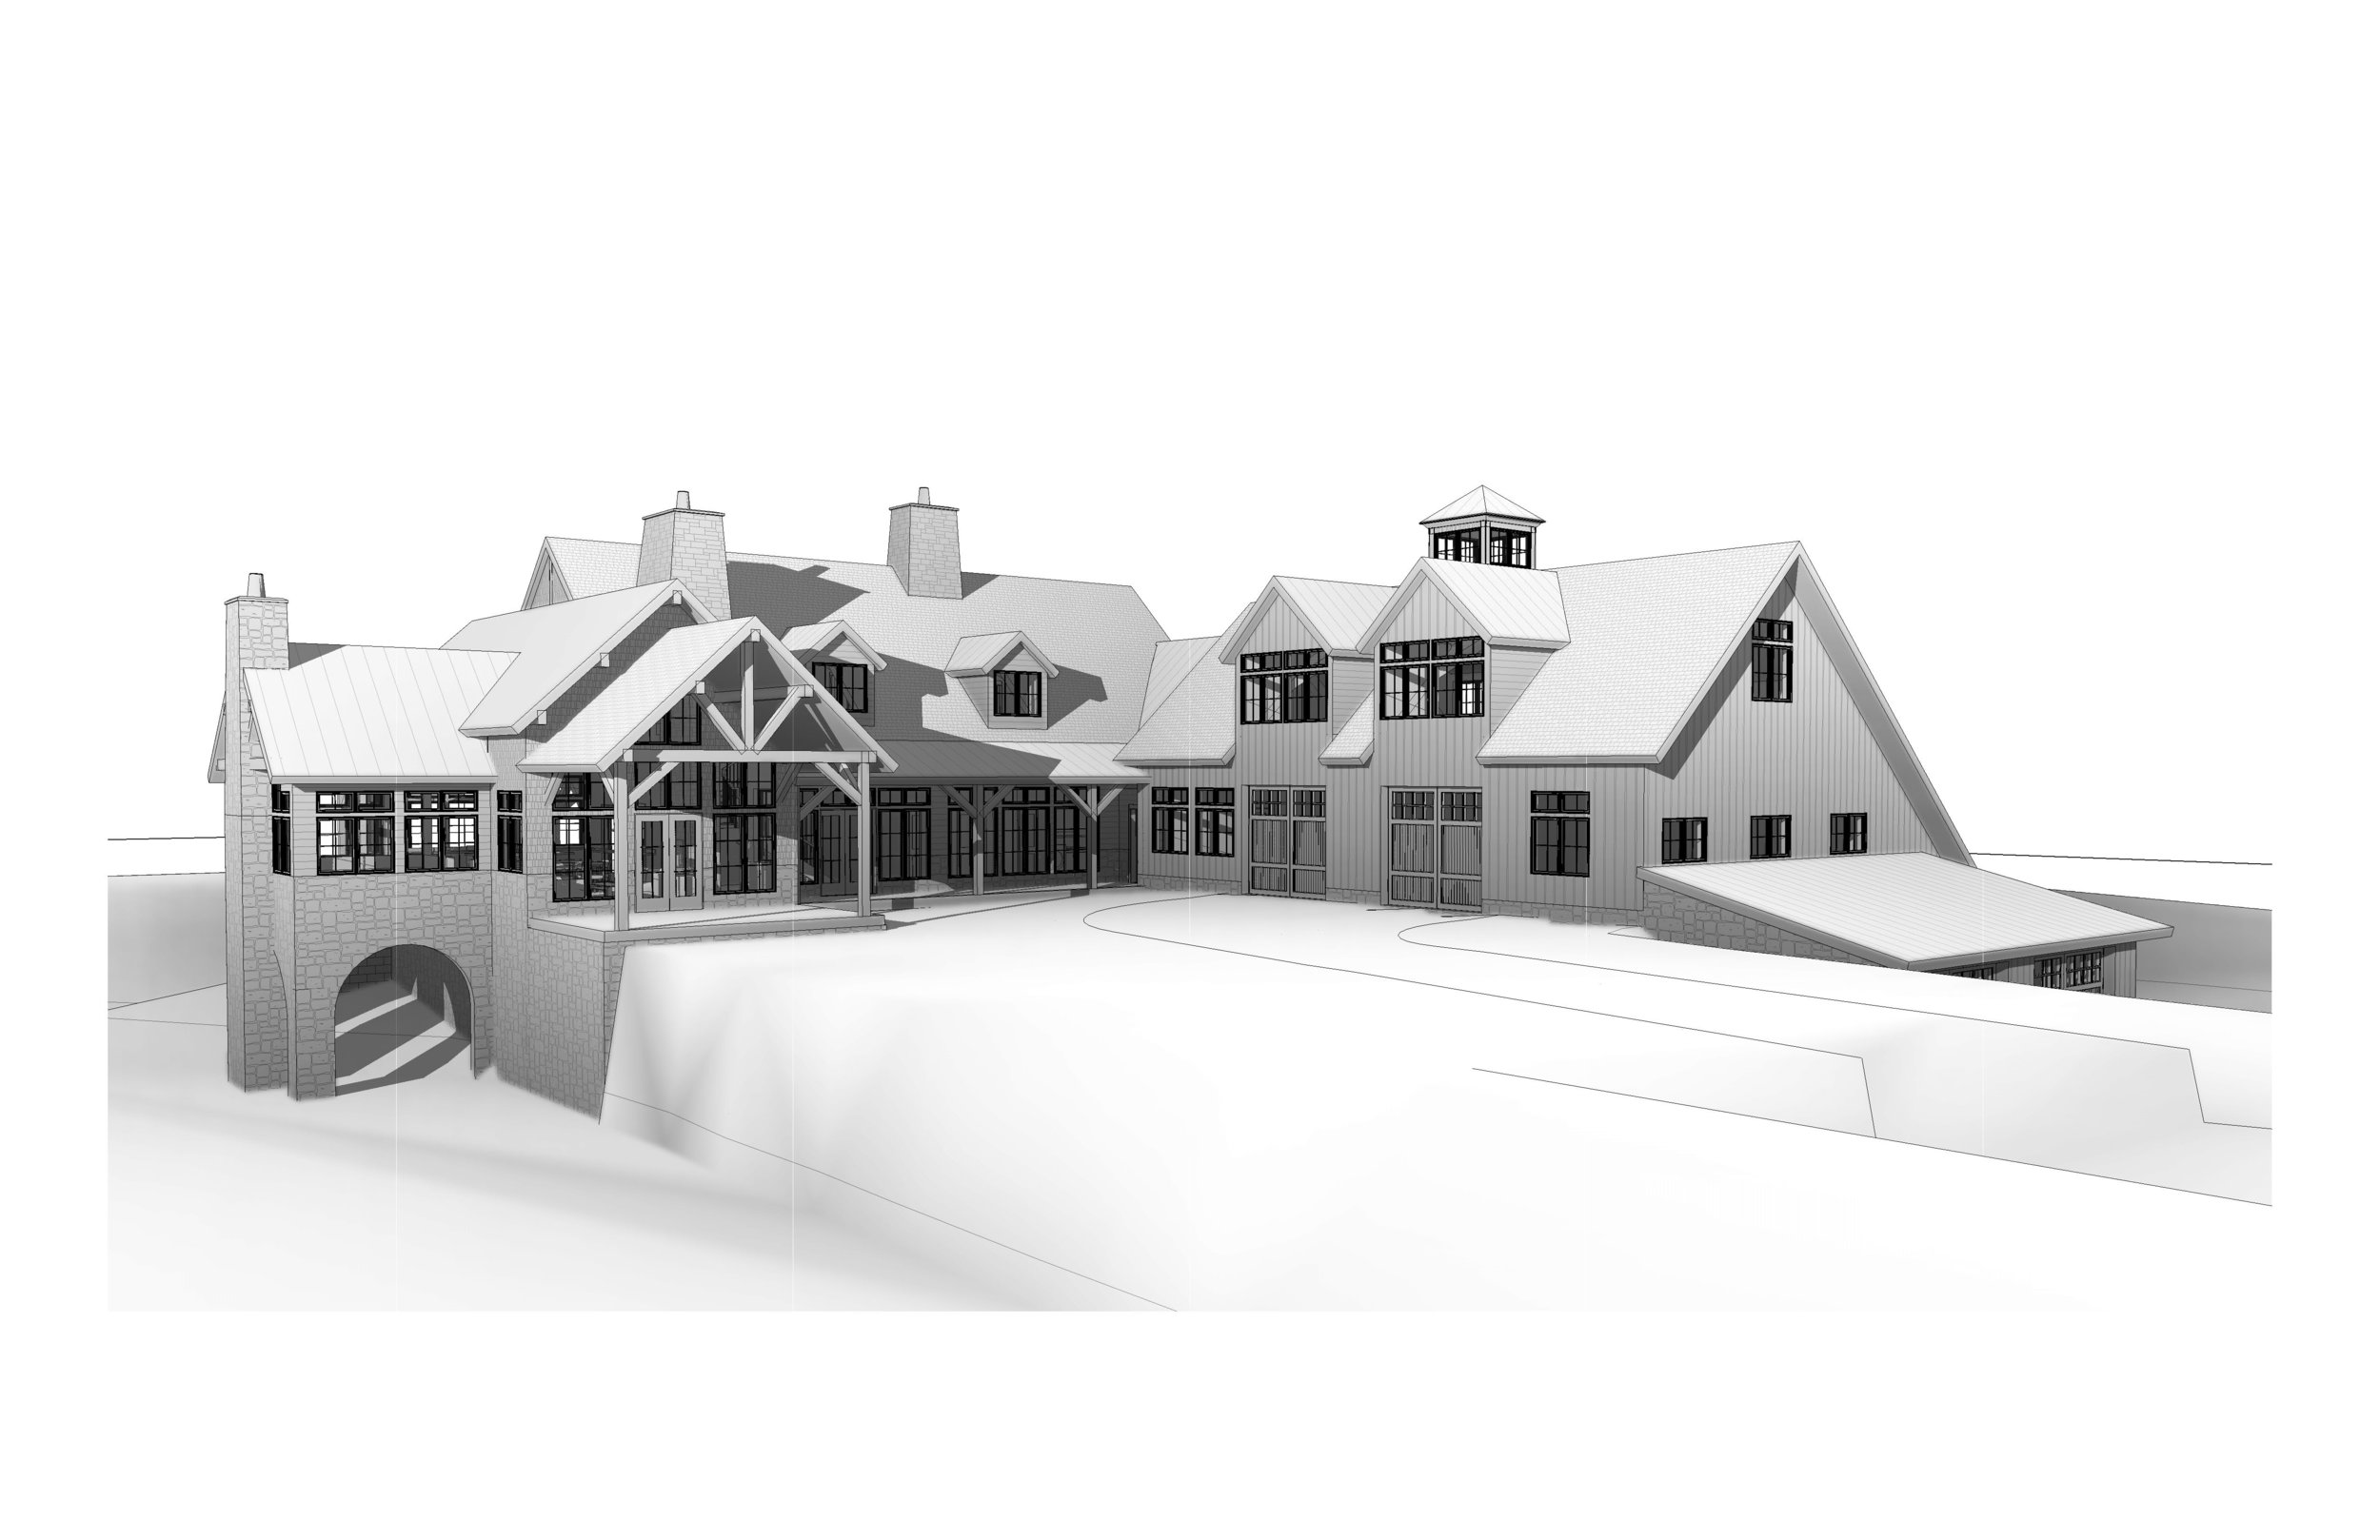 EARLY MODELING WITH ENLARGED BARN/ GARAGE